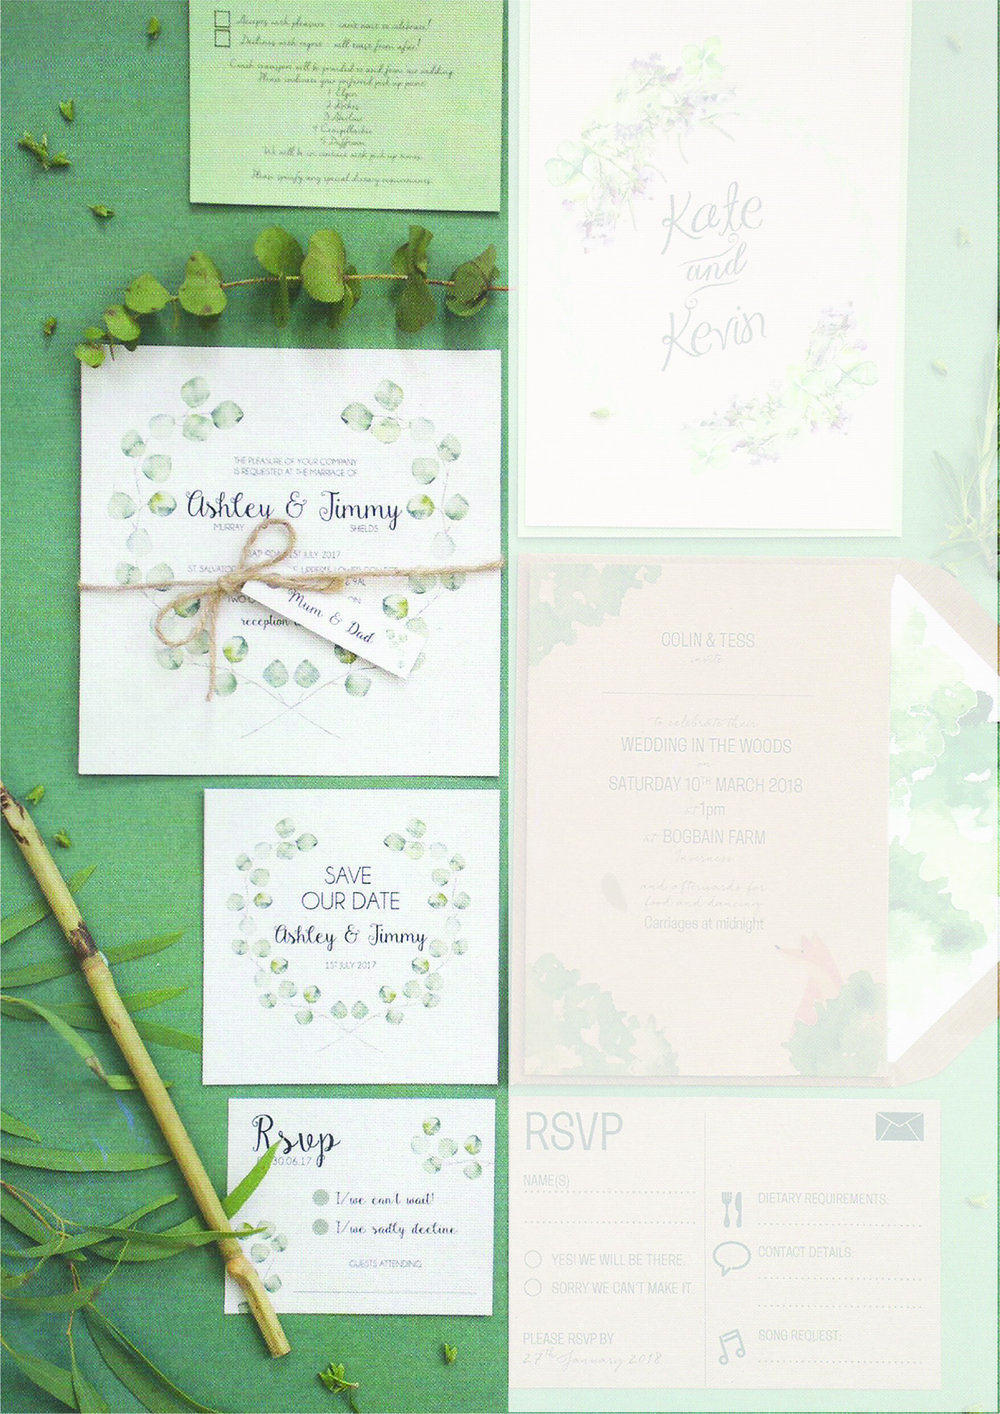 Scottish Wedding Directory - On of our most popular designs were featured in the December 17' issue of Scottish Wedding Directory magazine. This design has been a big hit from day 1. Its simple but detailed design fits a variety of wedding themes & schemes.Can be found in issue autumn 17 issue page 253.